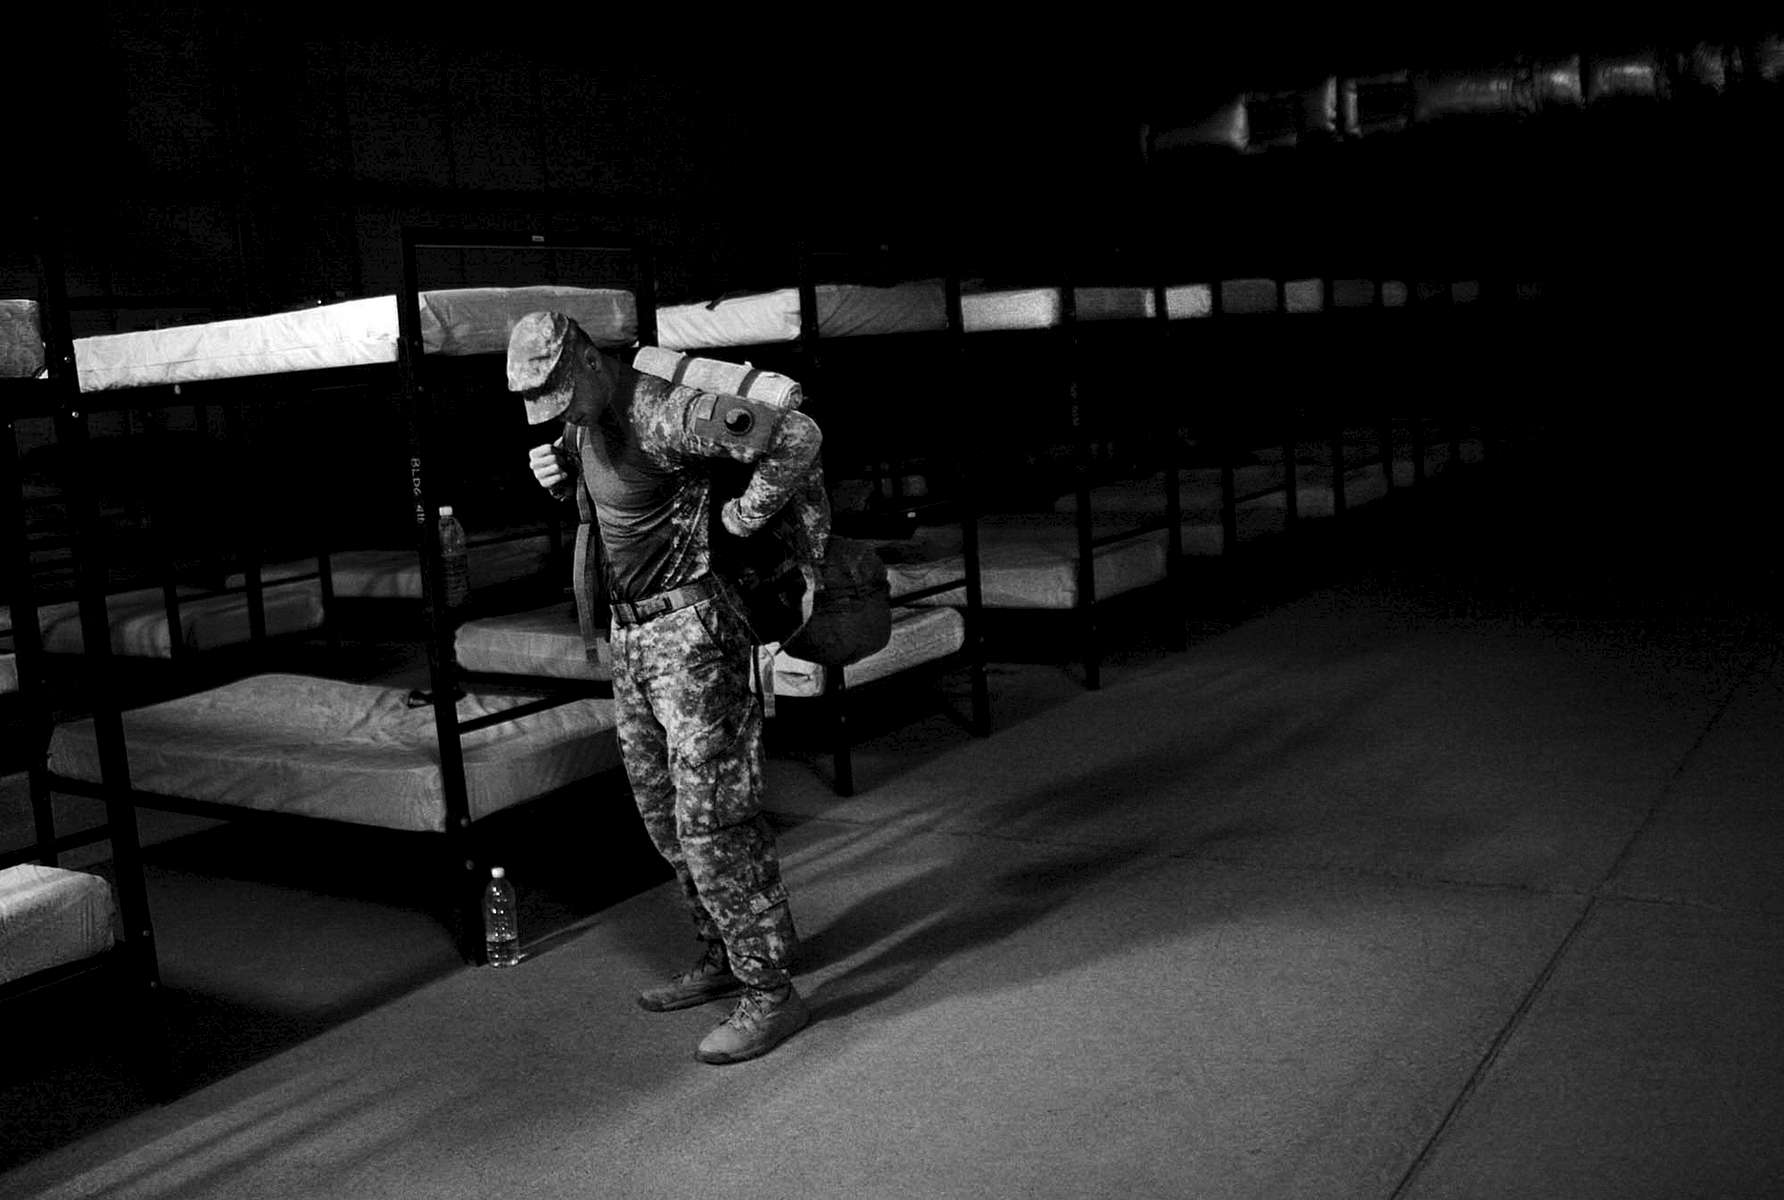 Lines of open sleeping areas string into the dark as Cpl. Joshua Marston, 23, of Culpeper, loads up at Camp Taji in Iraq. He was one of the last to leave the sleeping area on the last mission of their convoy group. Marston works as a gunner in his vehicle. Marston is with the Virginia National Guard.